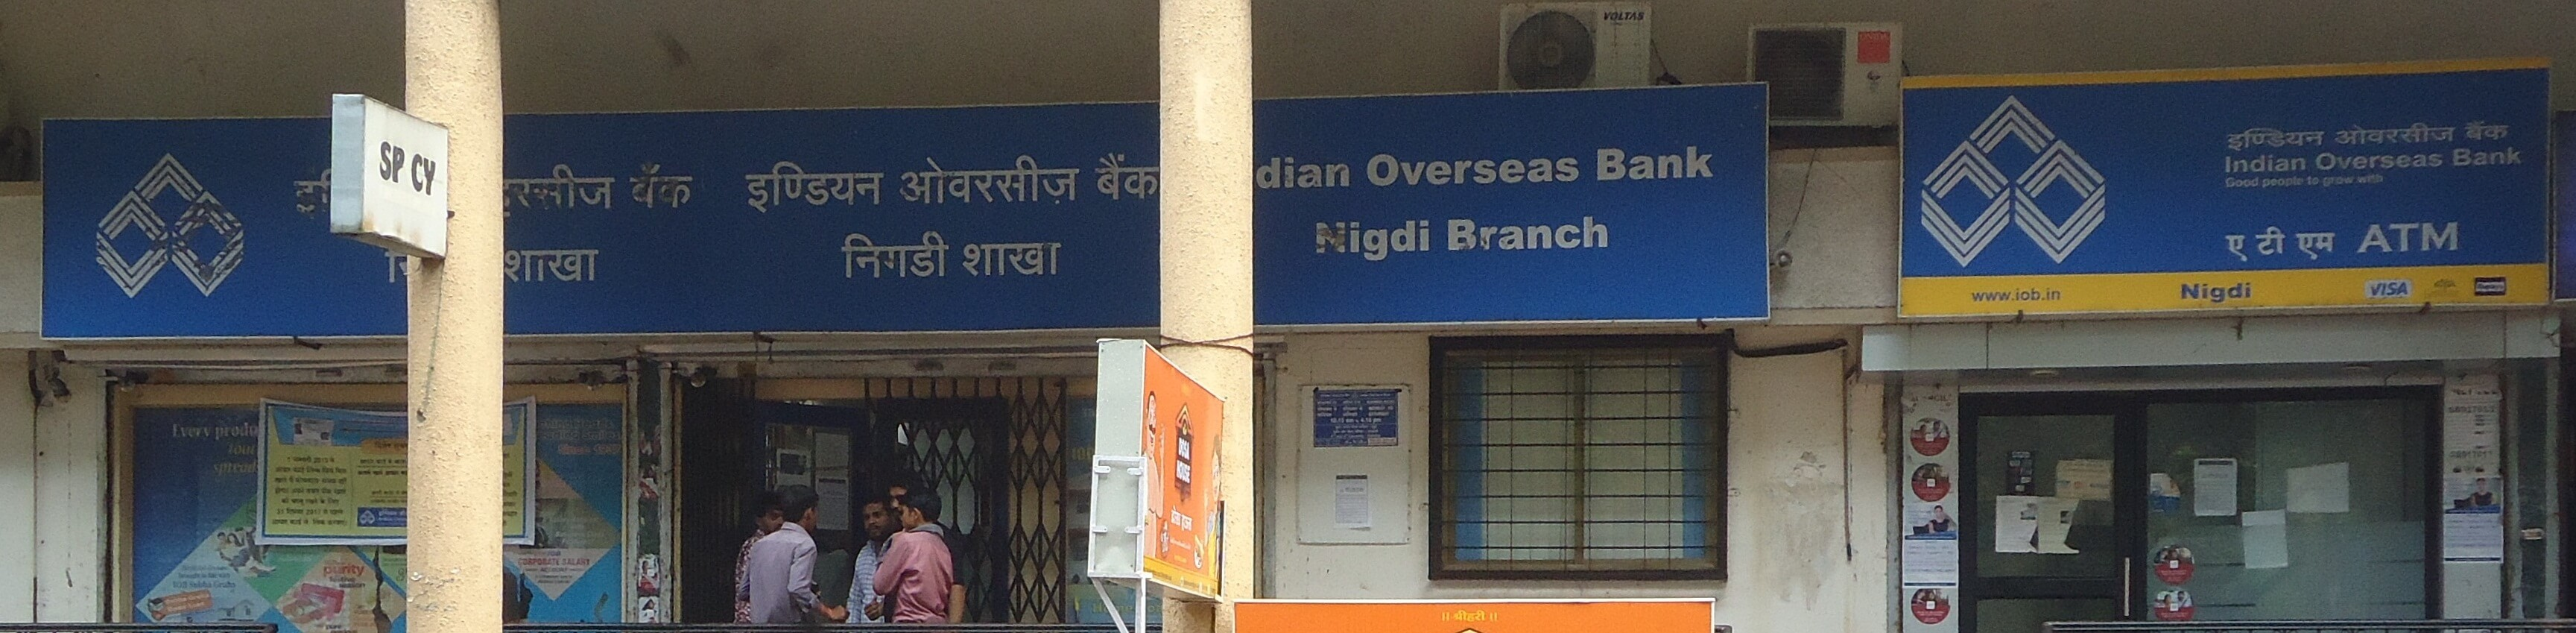 Indian Overseas Bank at Pimpri Chinchwad Polytechnic College